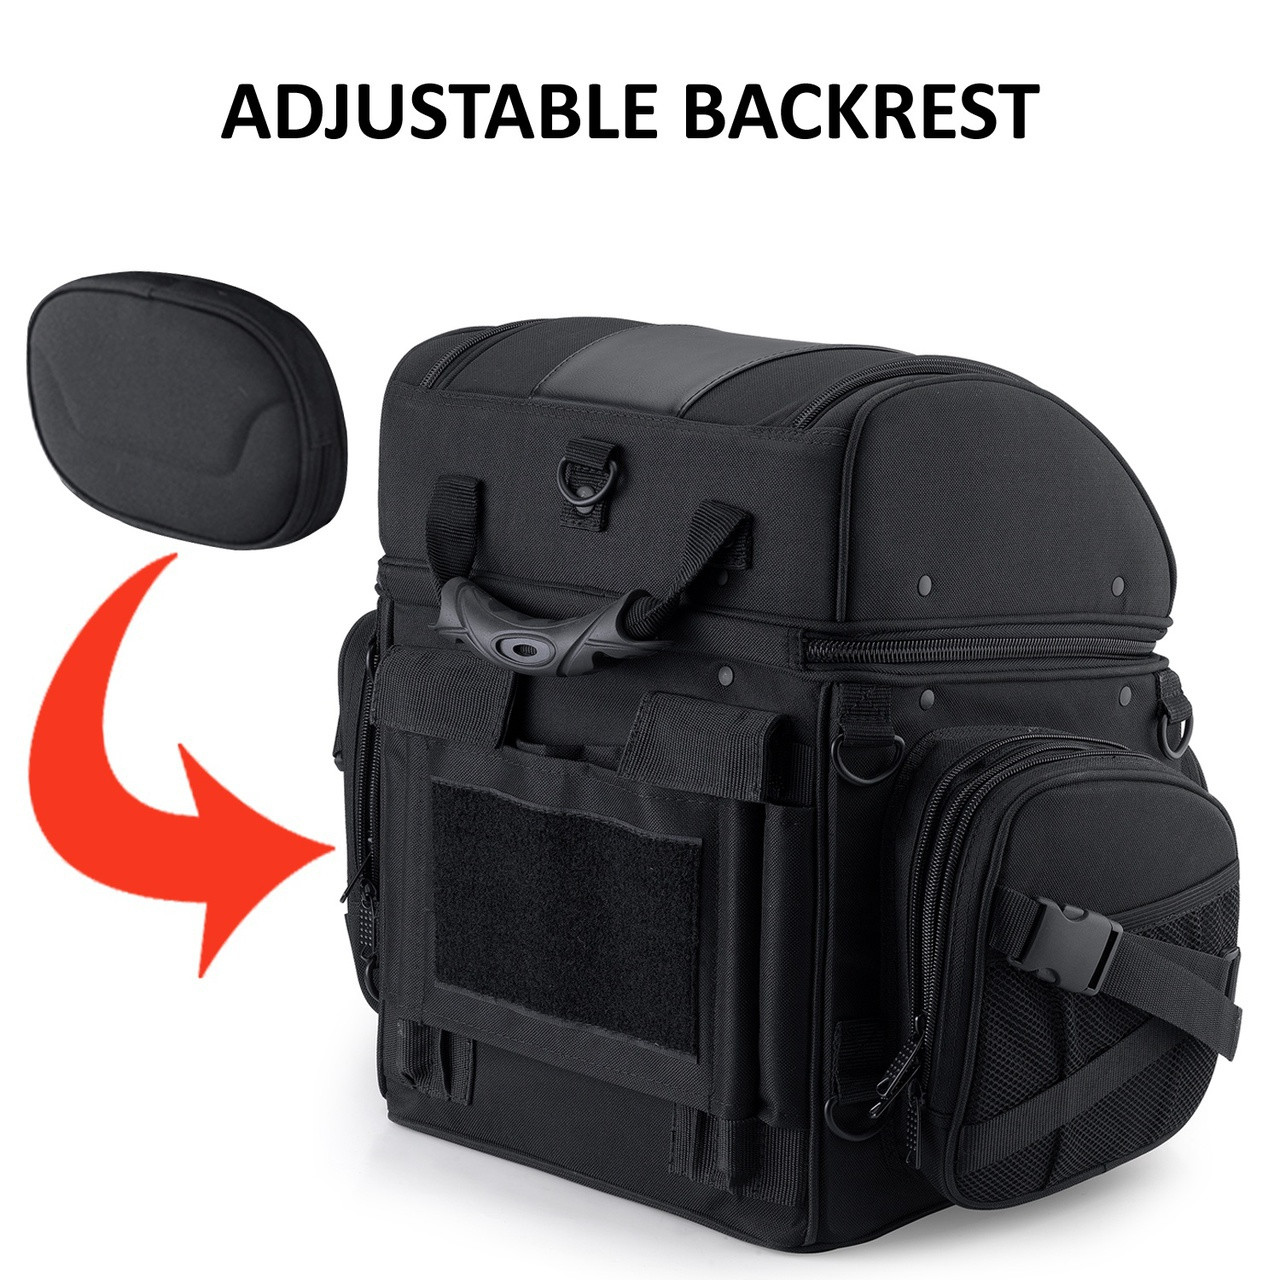 Large Back Motorcycle Seat Luggage (4080 cubic inches) Adjustable Backrest